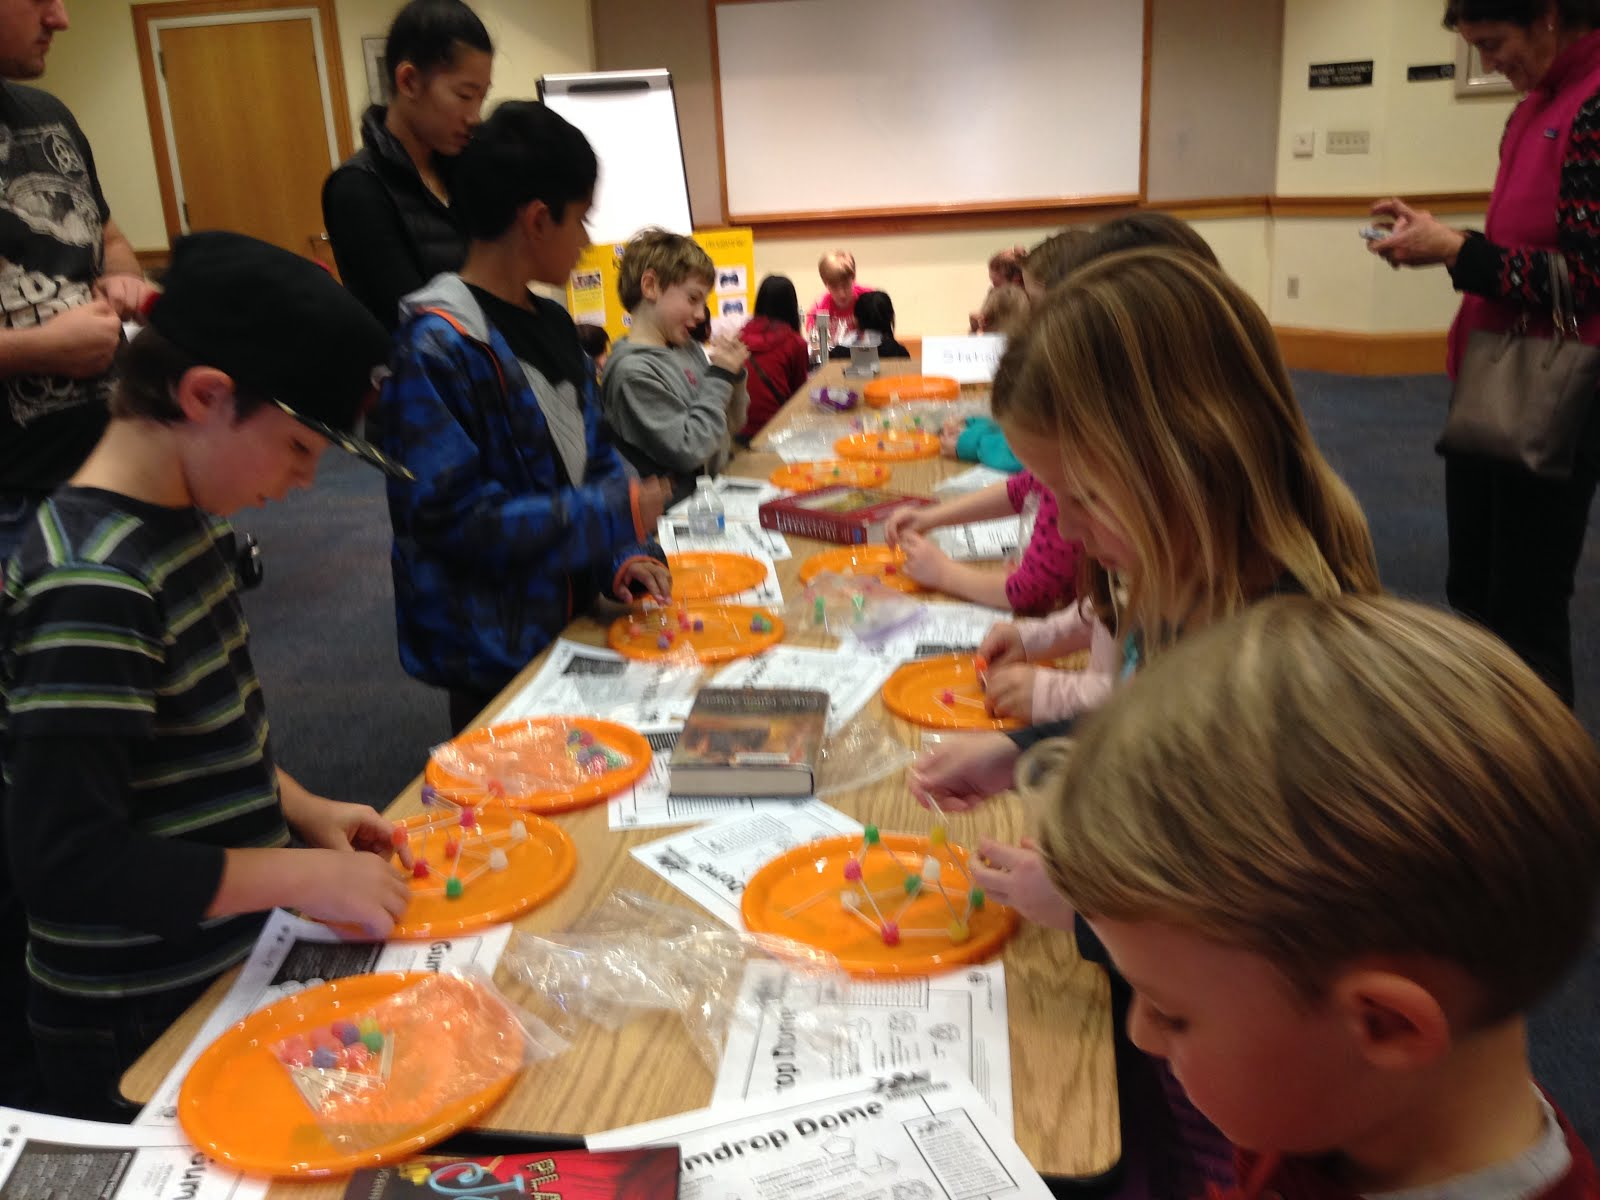 Fun with Robots, Math and Science Day at the Library